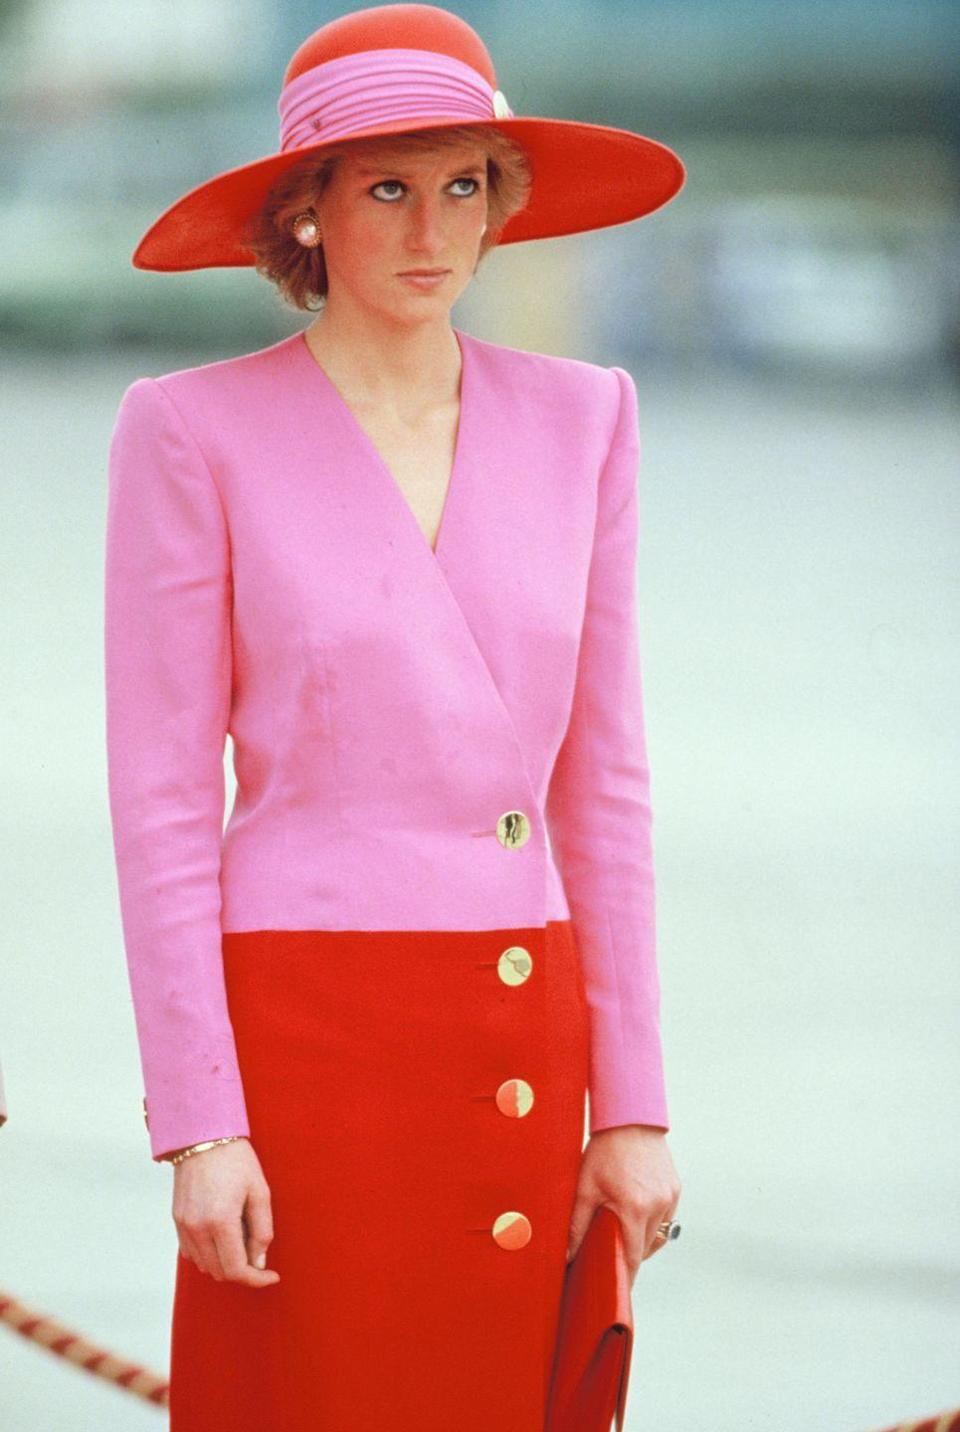 <p>A high contrasting look with this pink and red button down dress, down to the top hat and clutch, makes for a bold statement.</p>